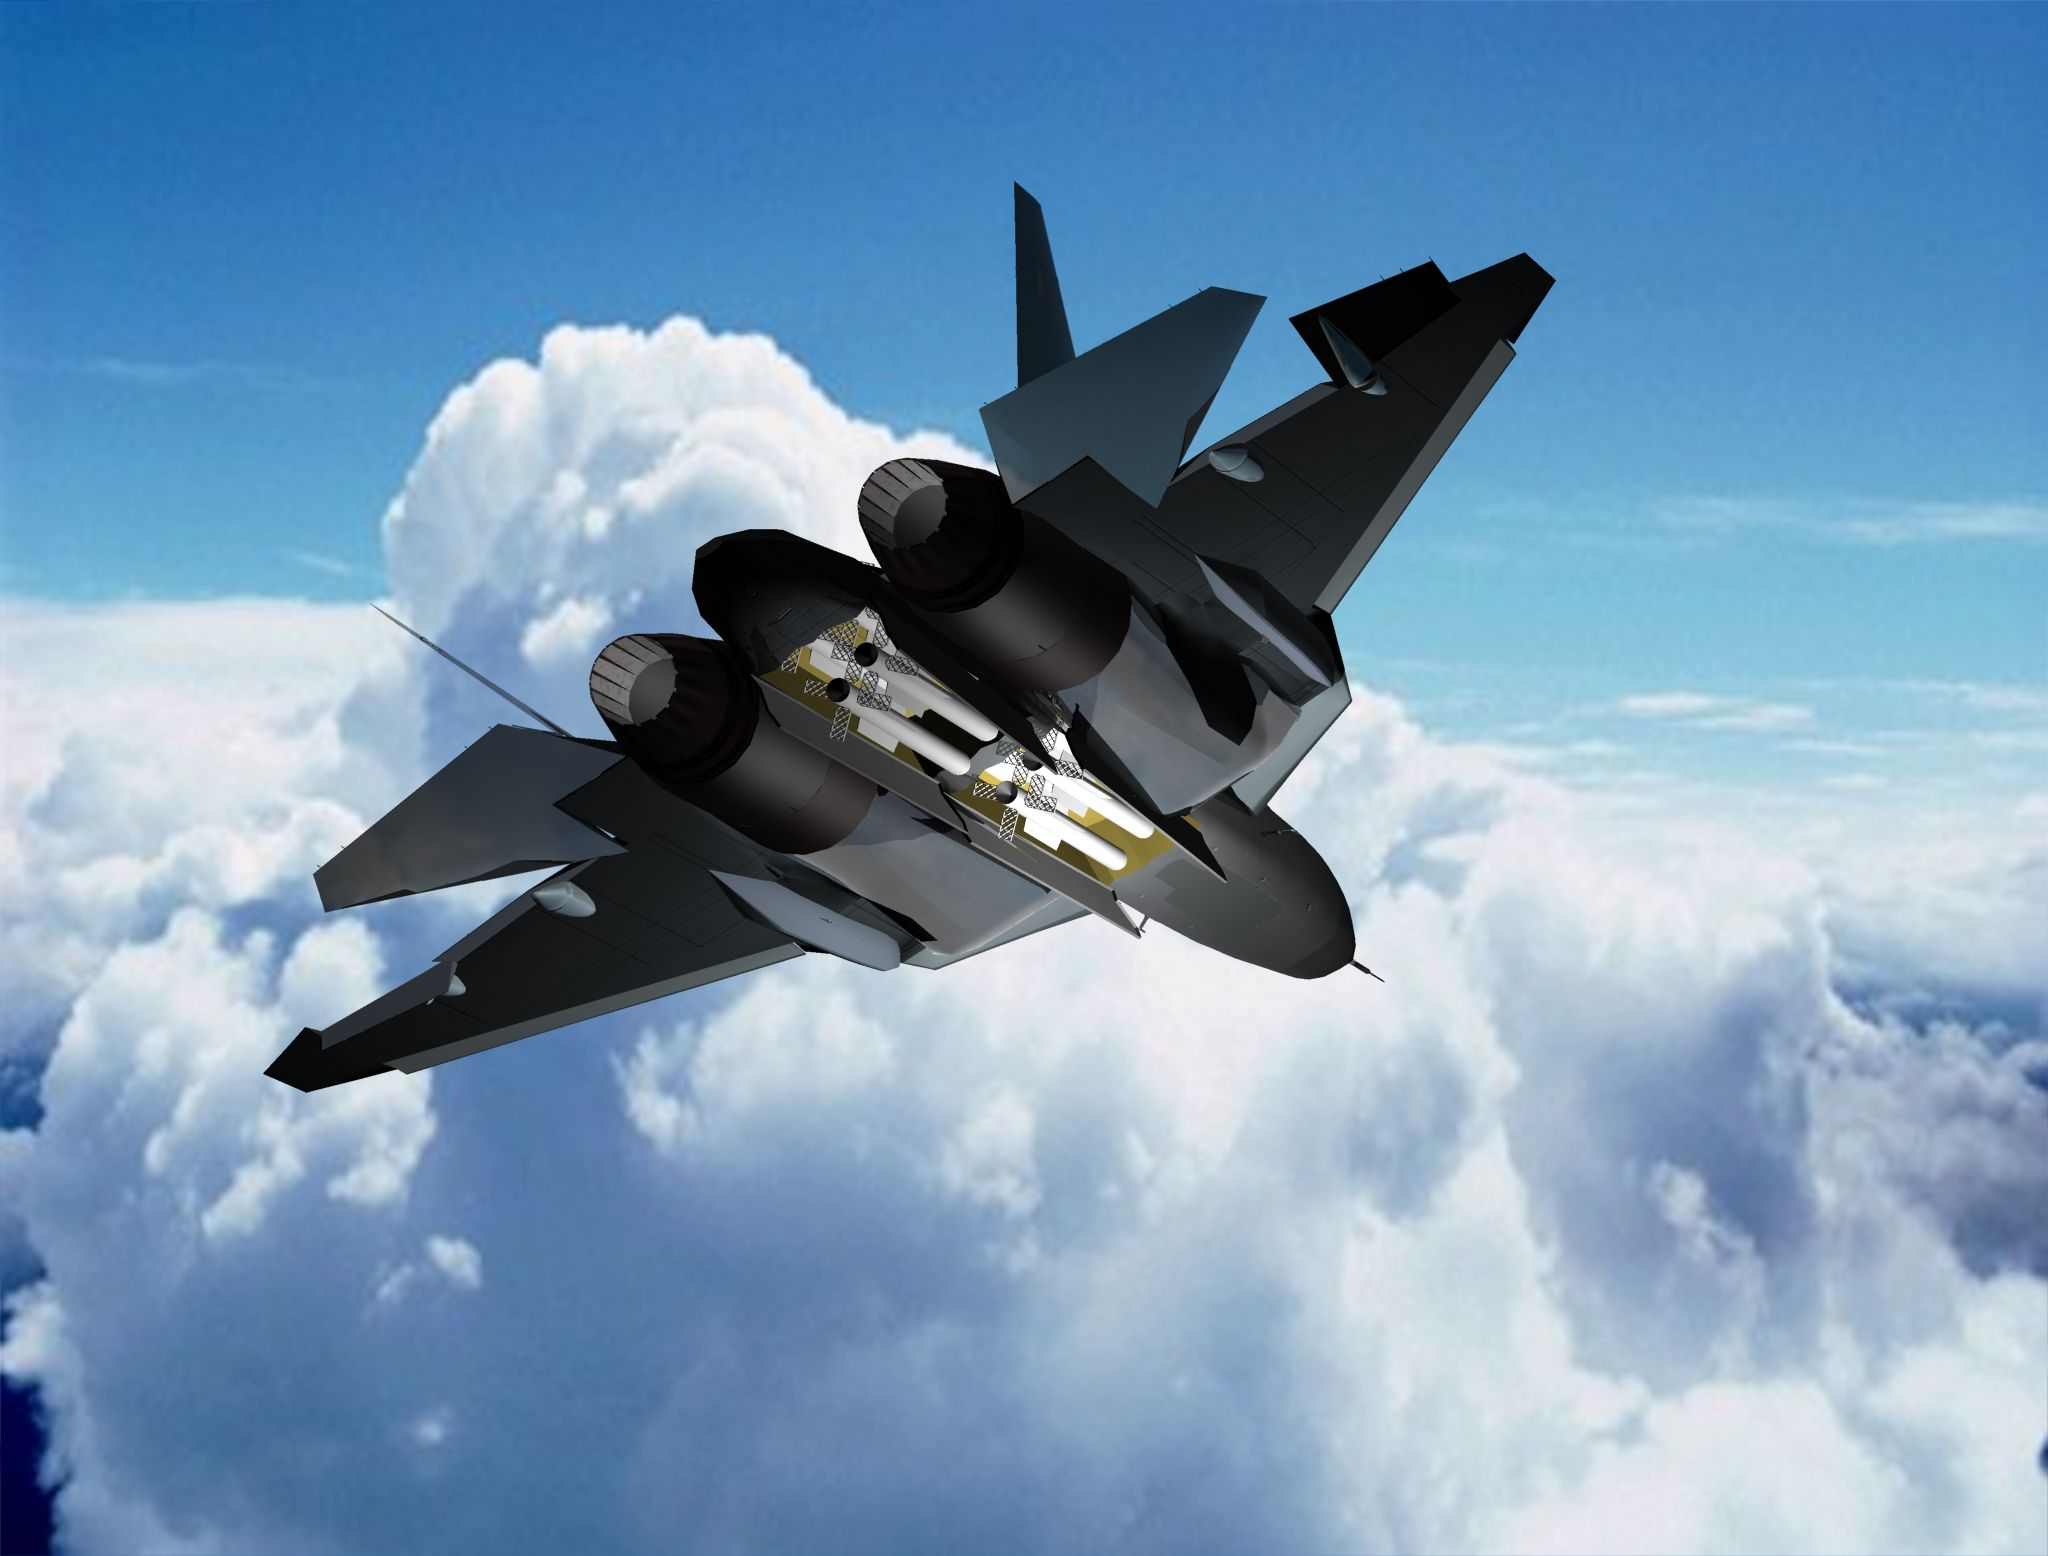 50 sukhoi t 50 pak fa wallpapers hd desktop and mobile backgrounds - Sukhoi Pak Fa And Fgfa Fifth Generation Fighter Aircraft